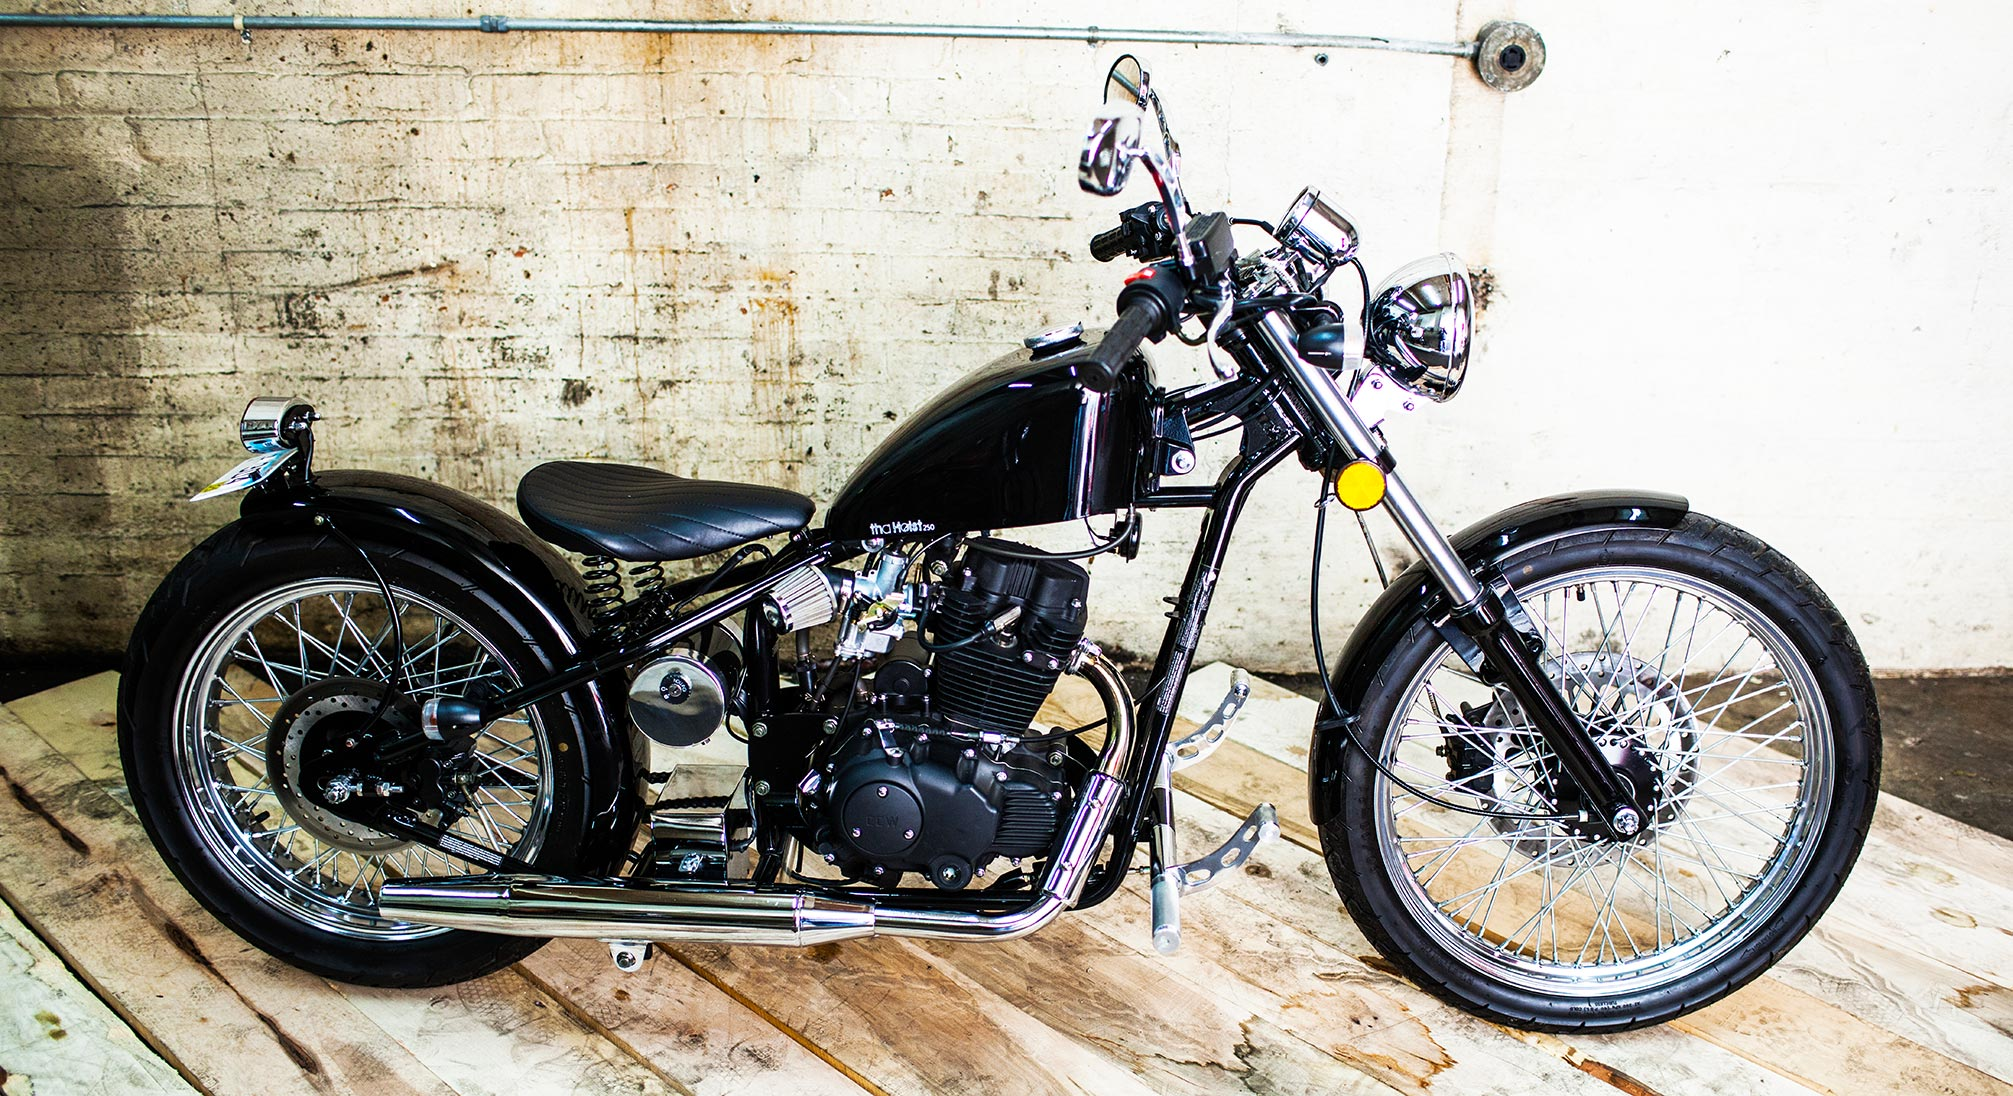 Cleveland CycleWerks Misfit 2014 images #70413